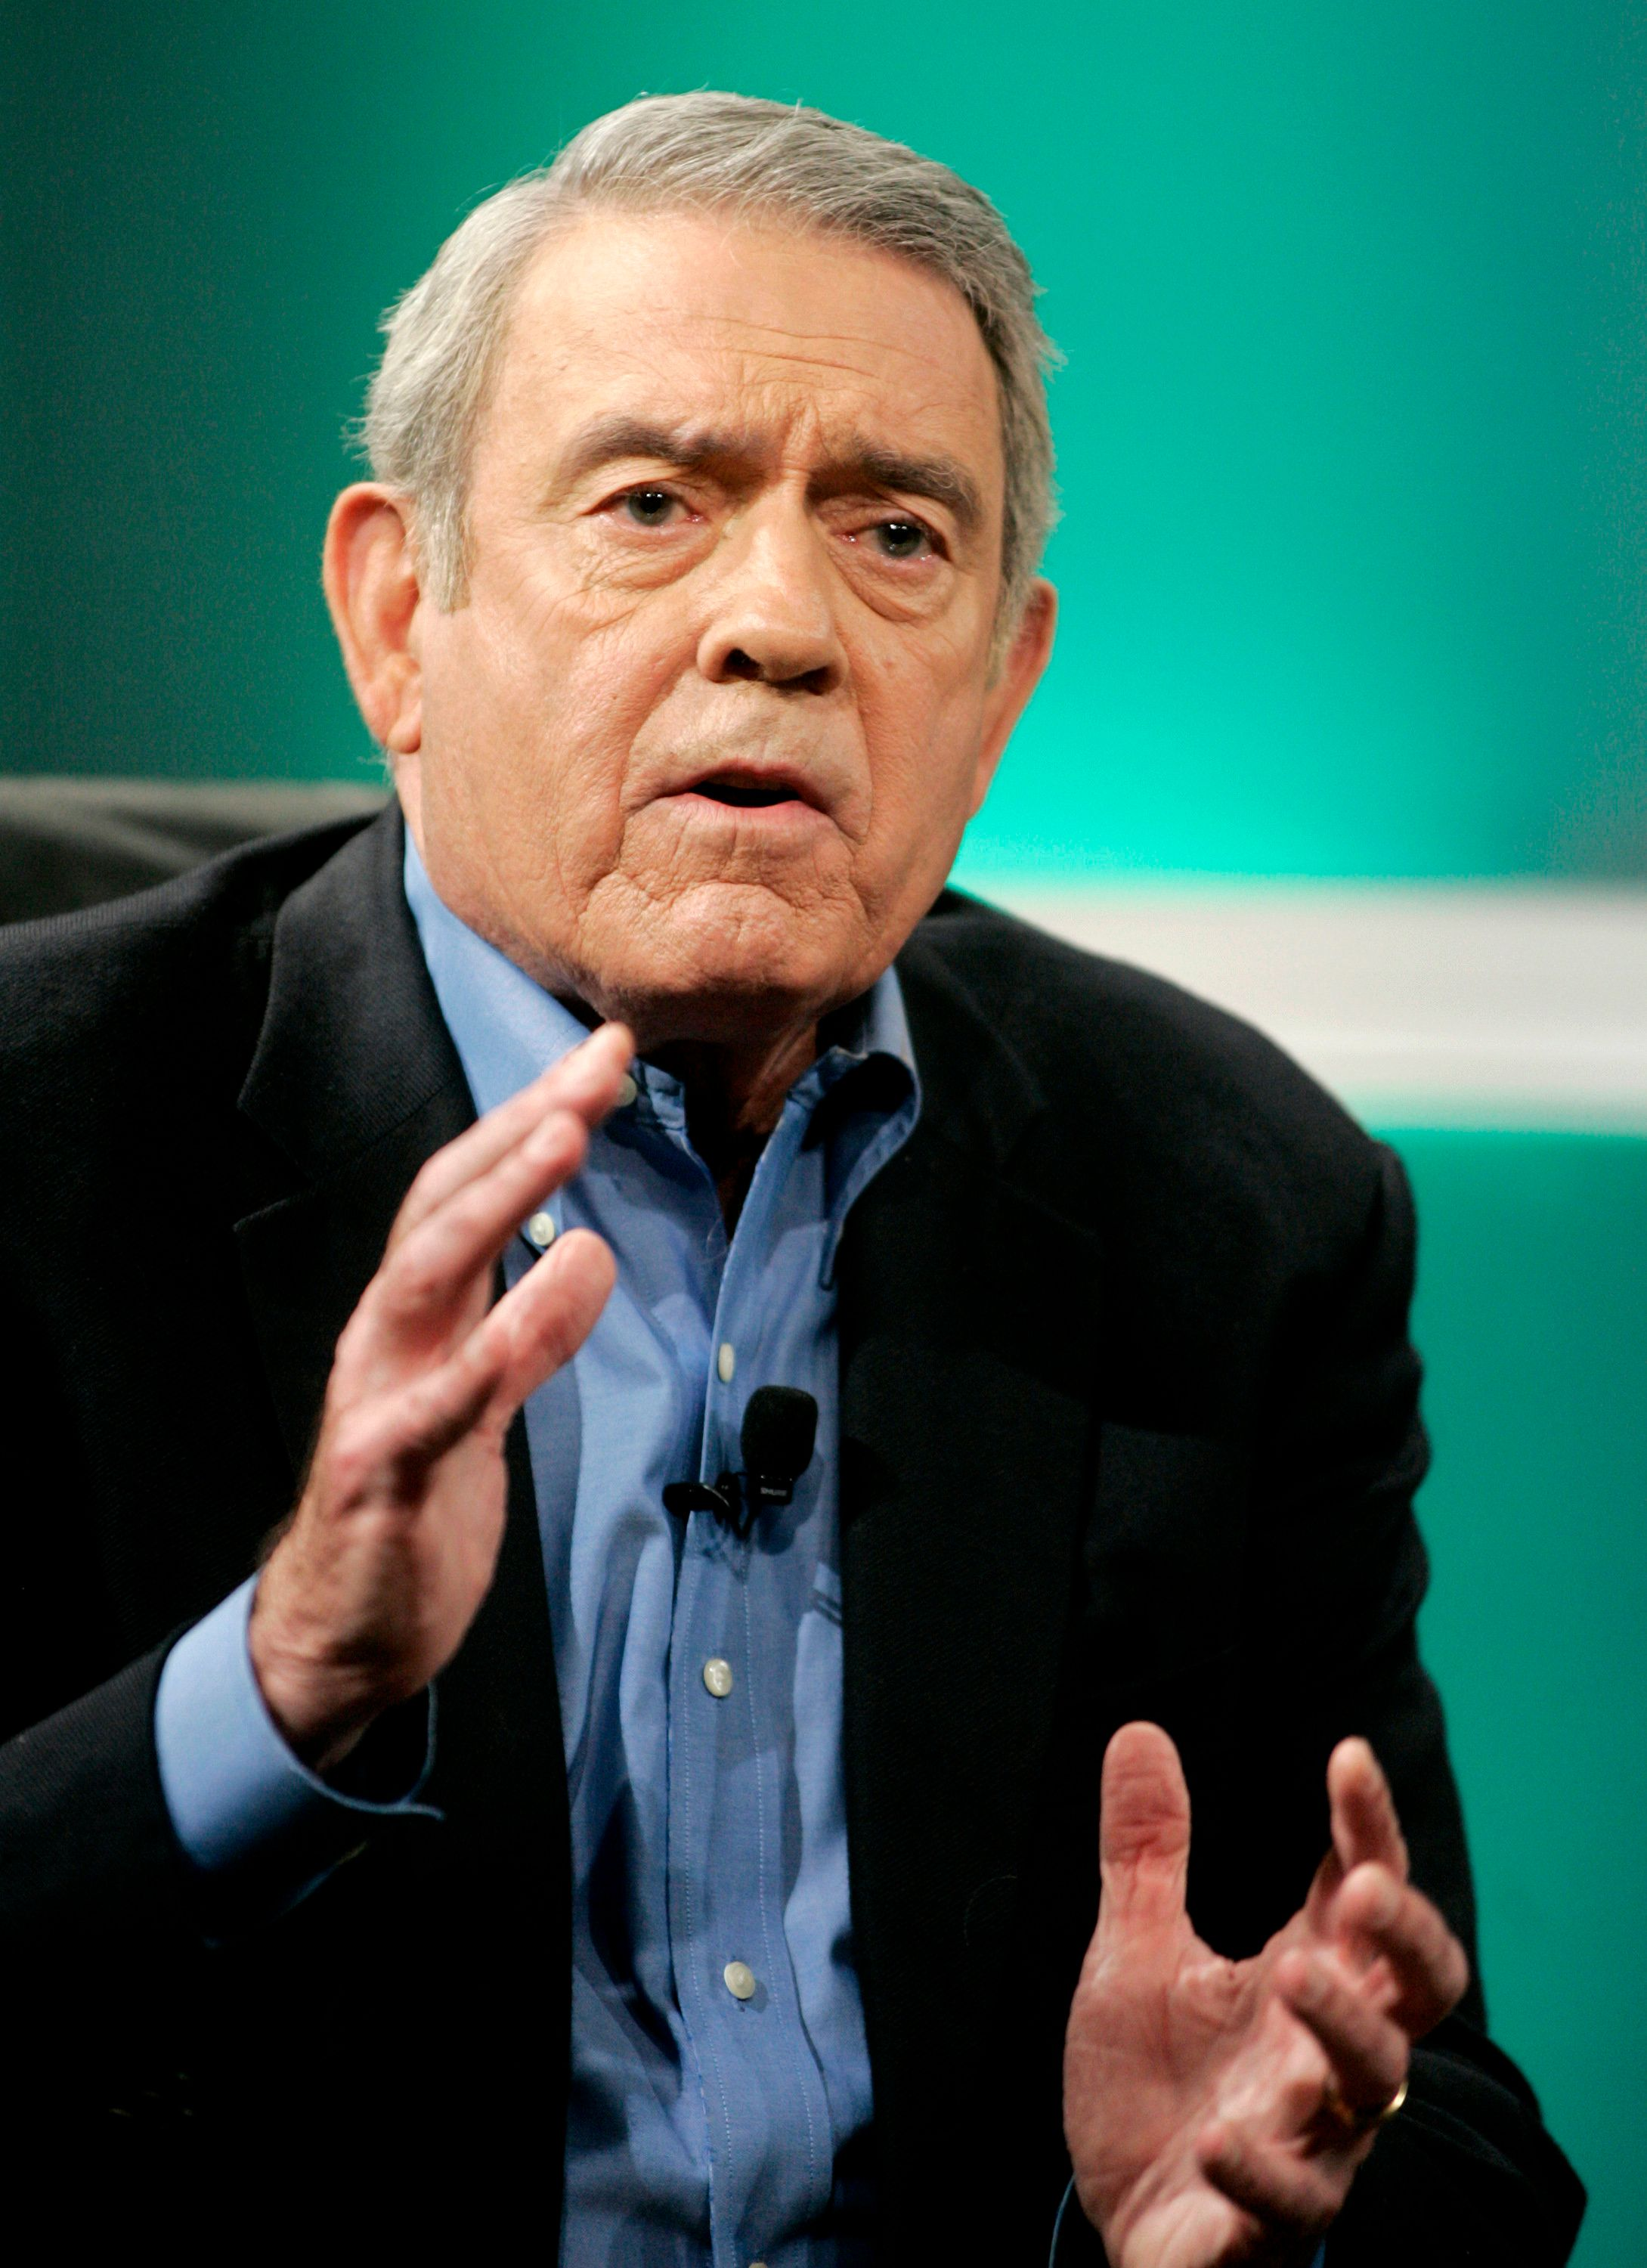 Former CBS news anchor Dan Rather answers questions at the Cable Television Critics Association press tour in Pasadena, California July 11, 2006 about his new program 'Dan Rather Presents' which premieres October 2006 on HDNet, [the high-definition channel owned by billionaire entrepreneur Mark Cuban.]